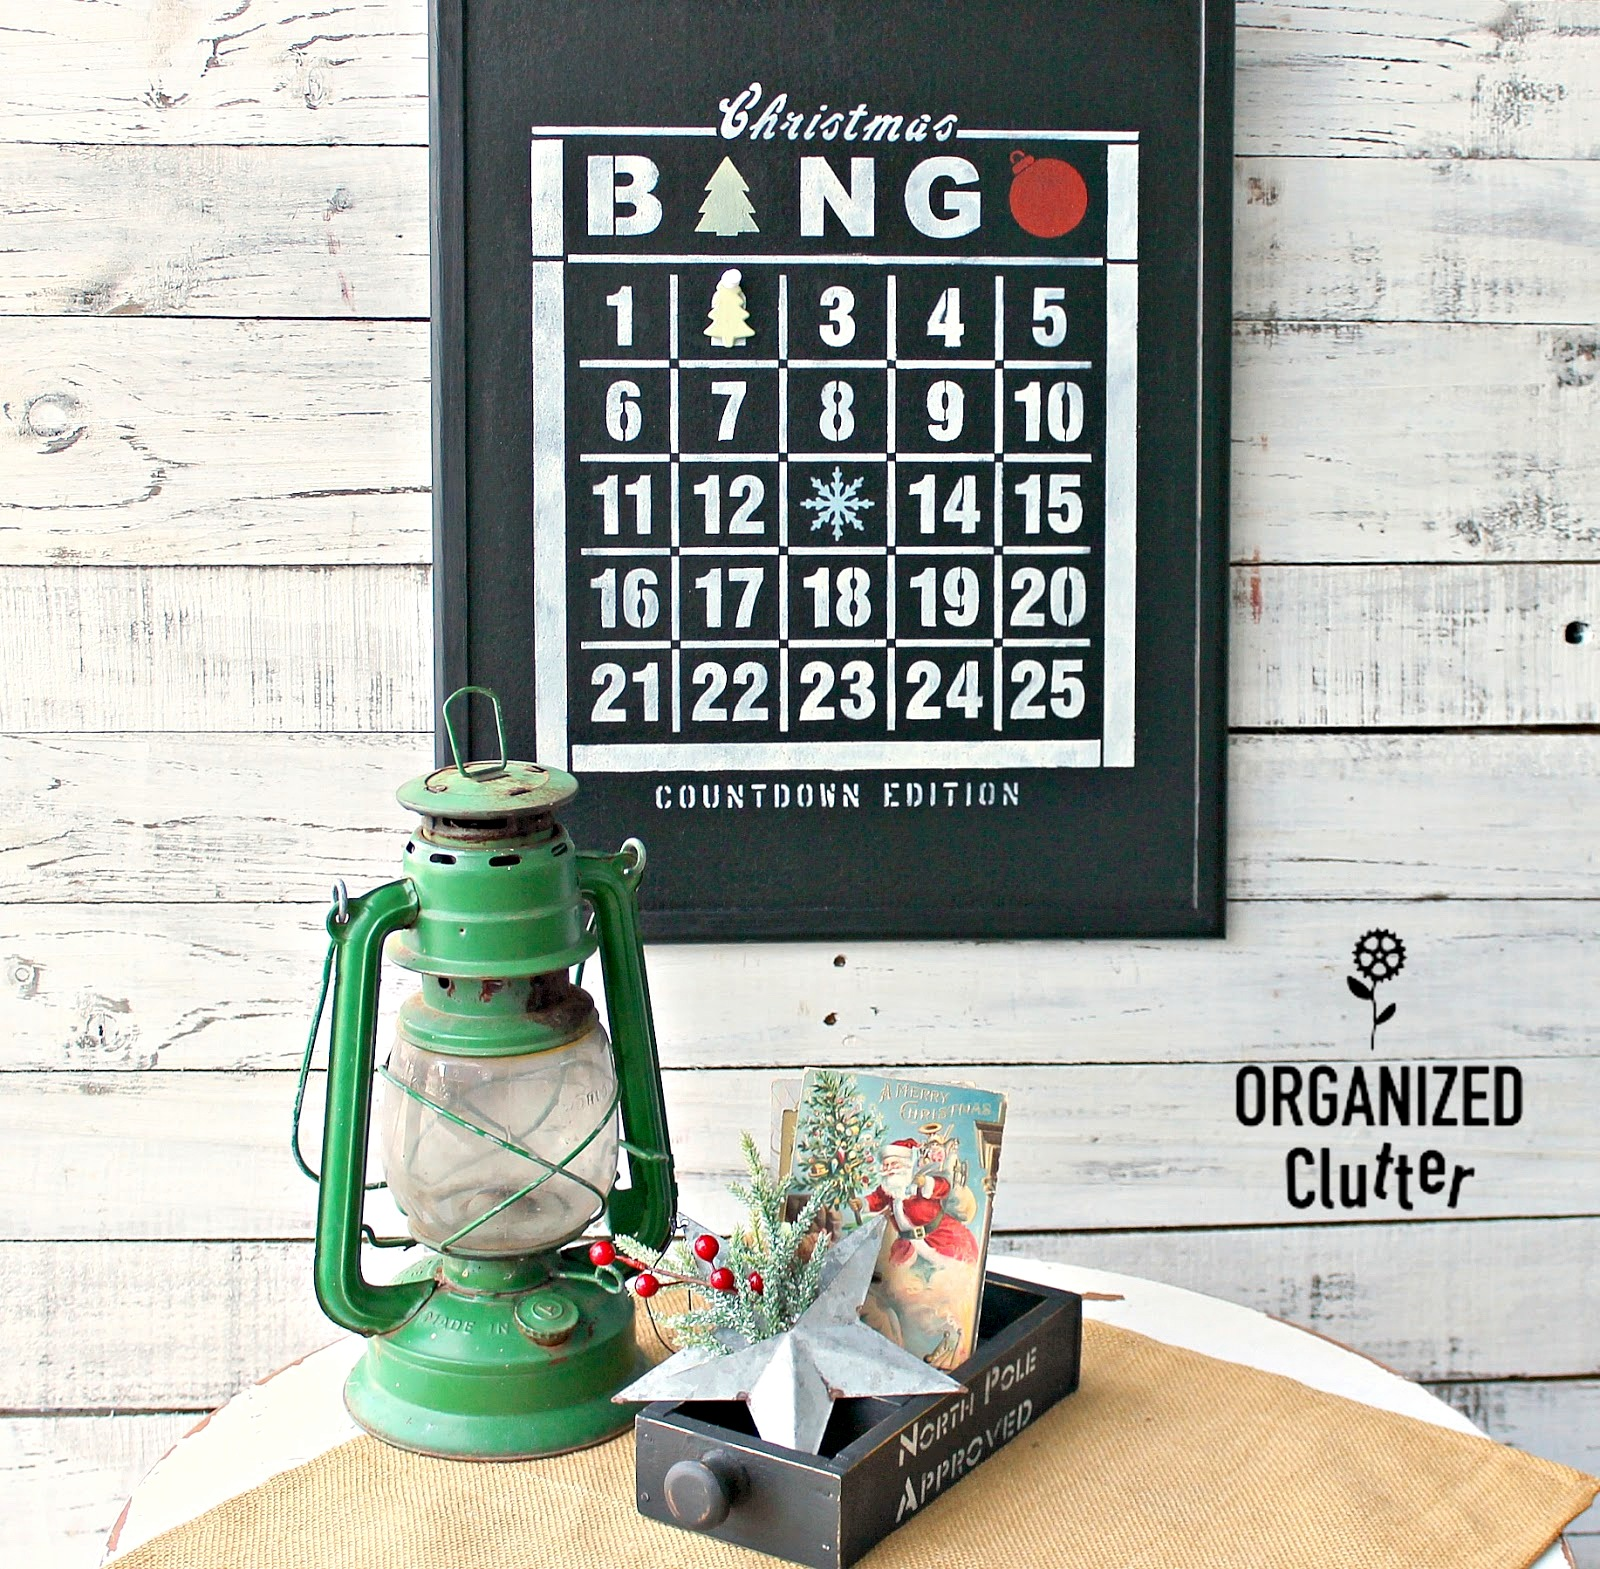 Christmas Countdown Bingo bulletin board by Organized Clutter, featured on Funky Junk Interiors